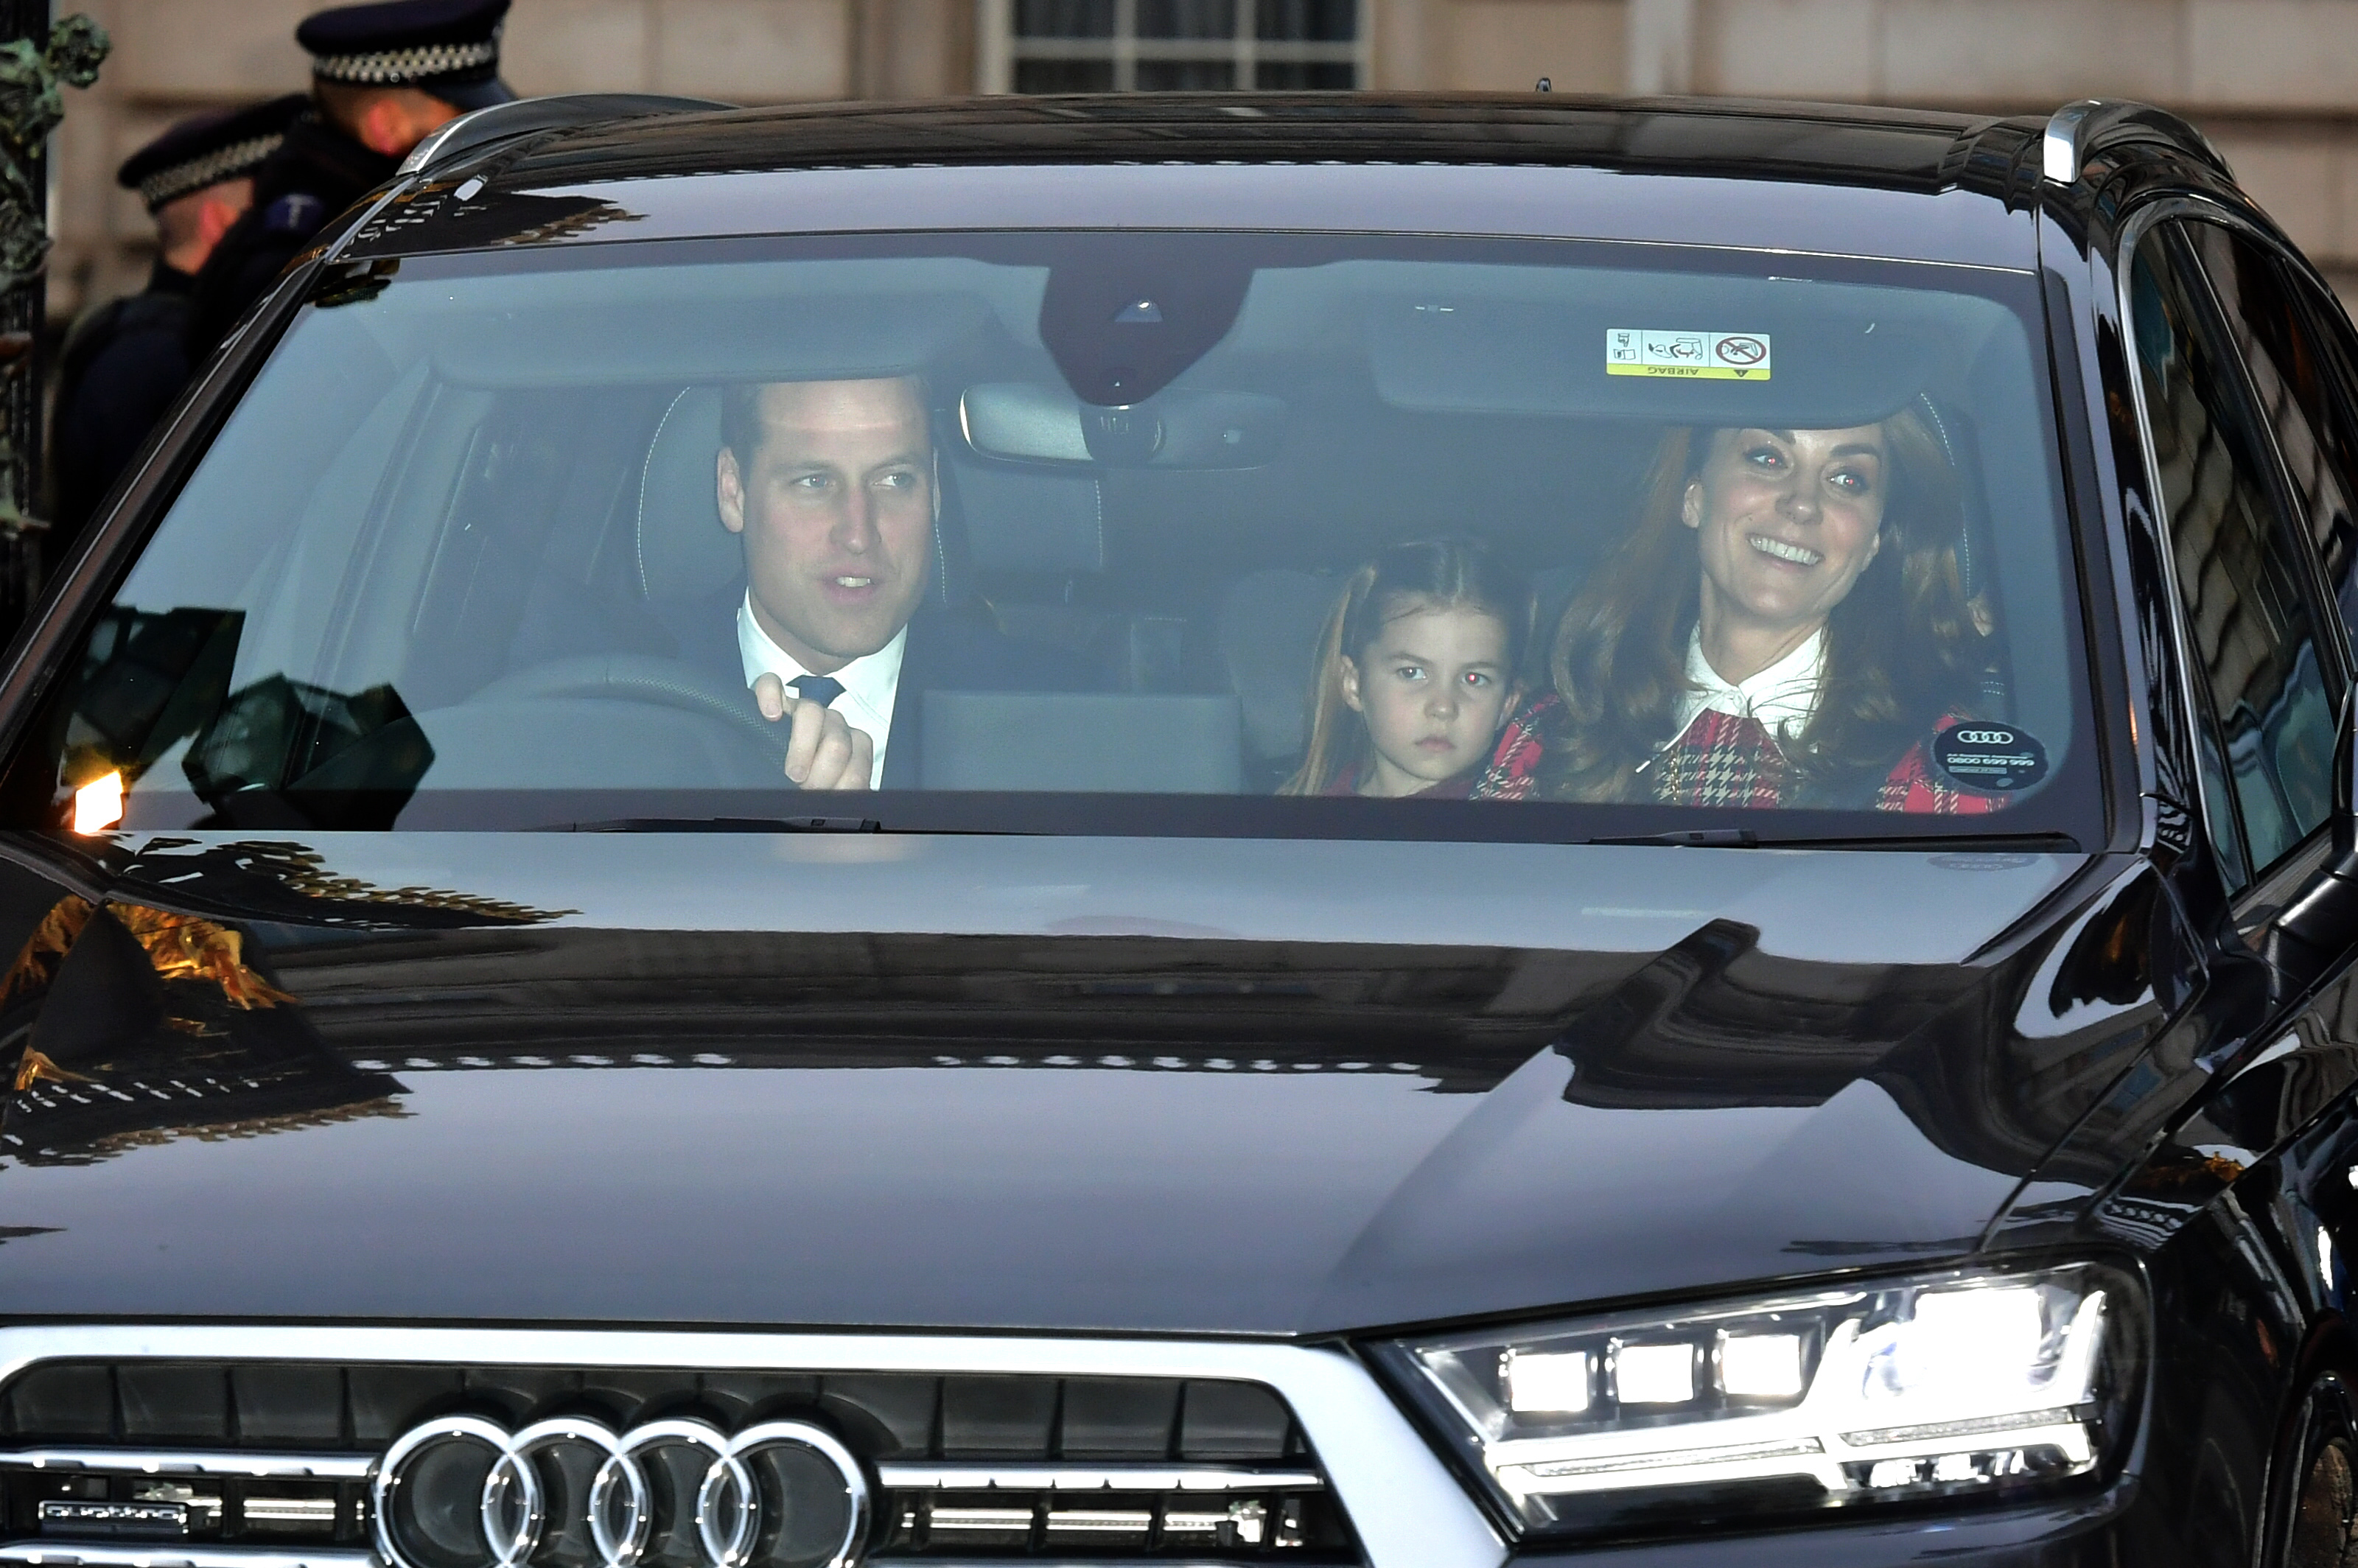 The Duke and Duchess of Cambridge with Princess Charlotte, leaving after the Queen's Christmas lunch at Buckingham Palace, London.